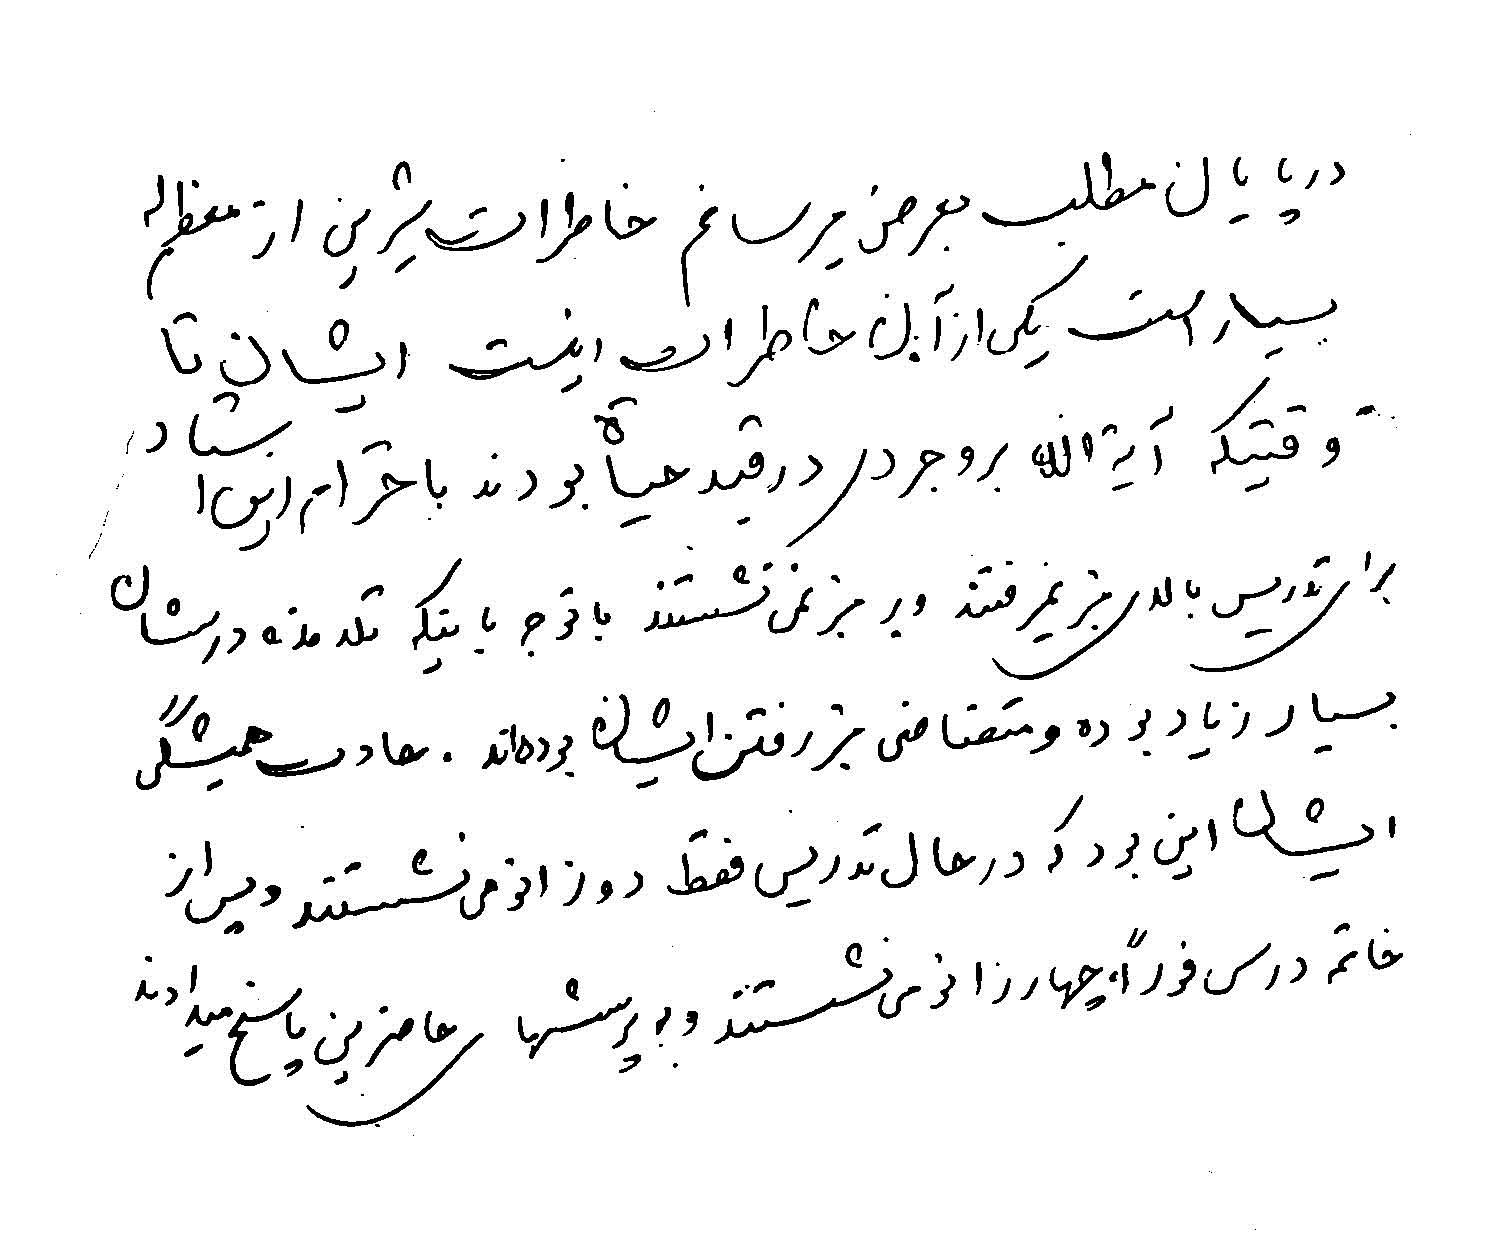 430-p163-181_Page_03